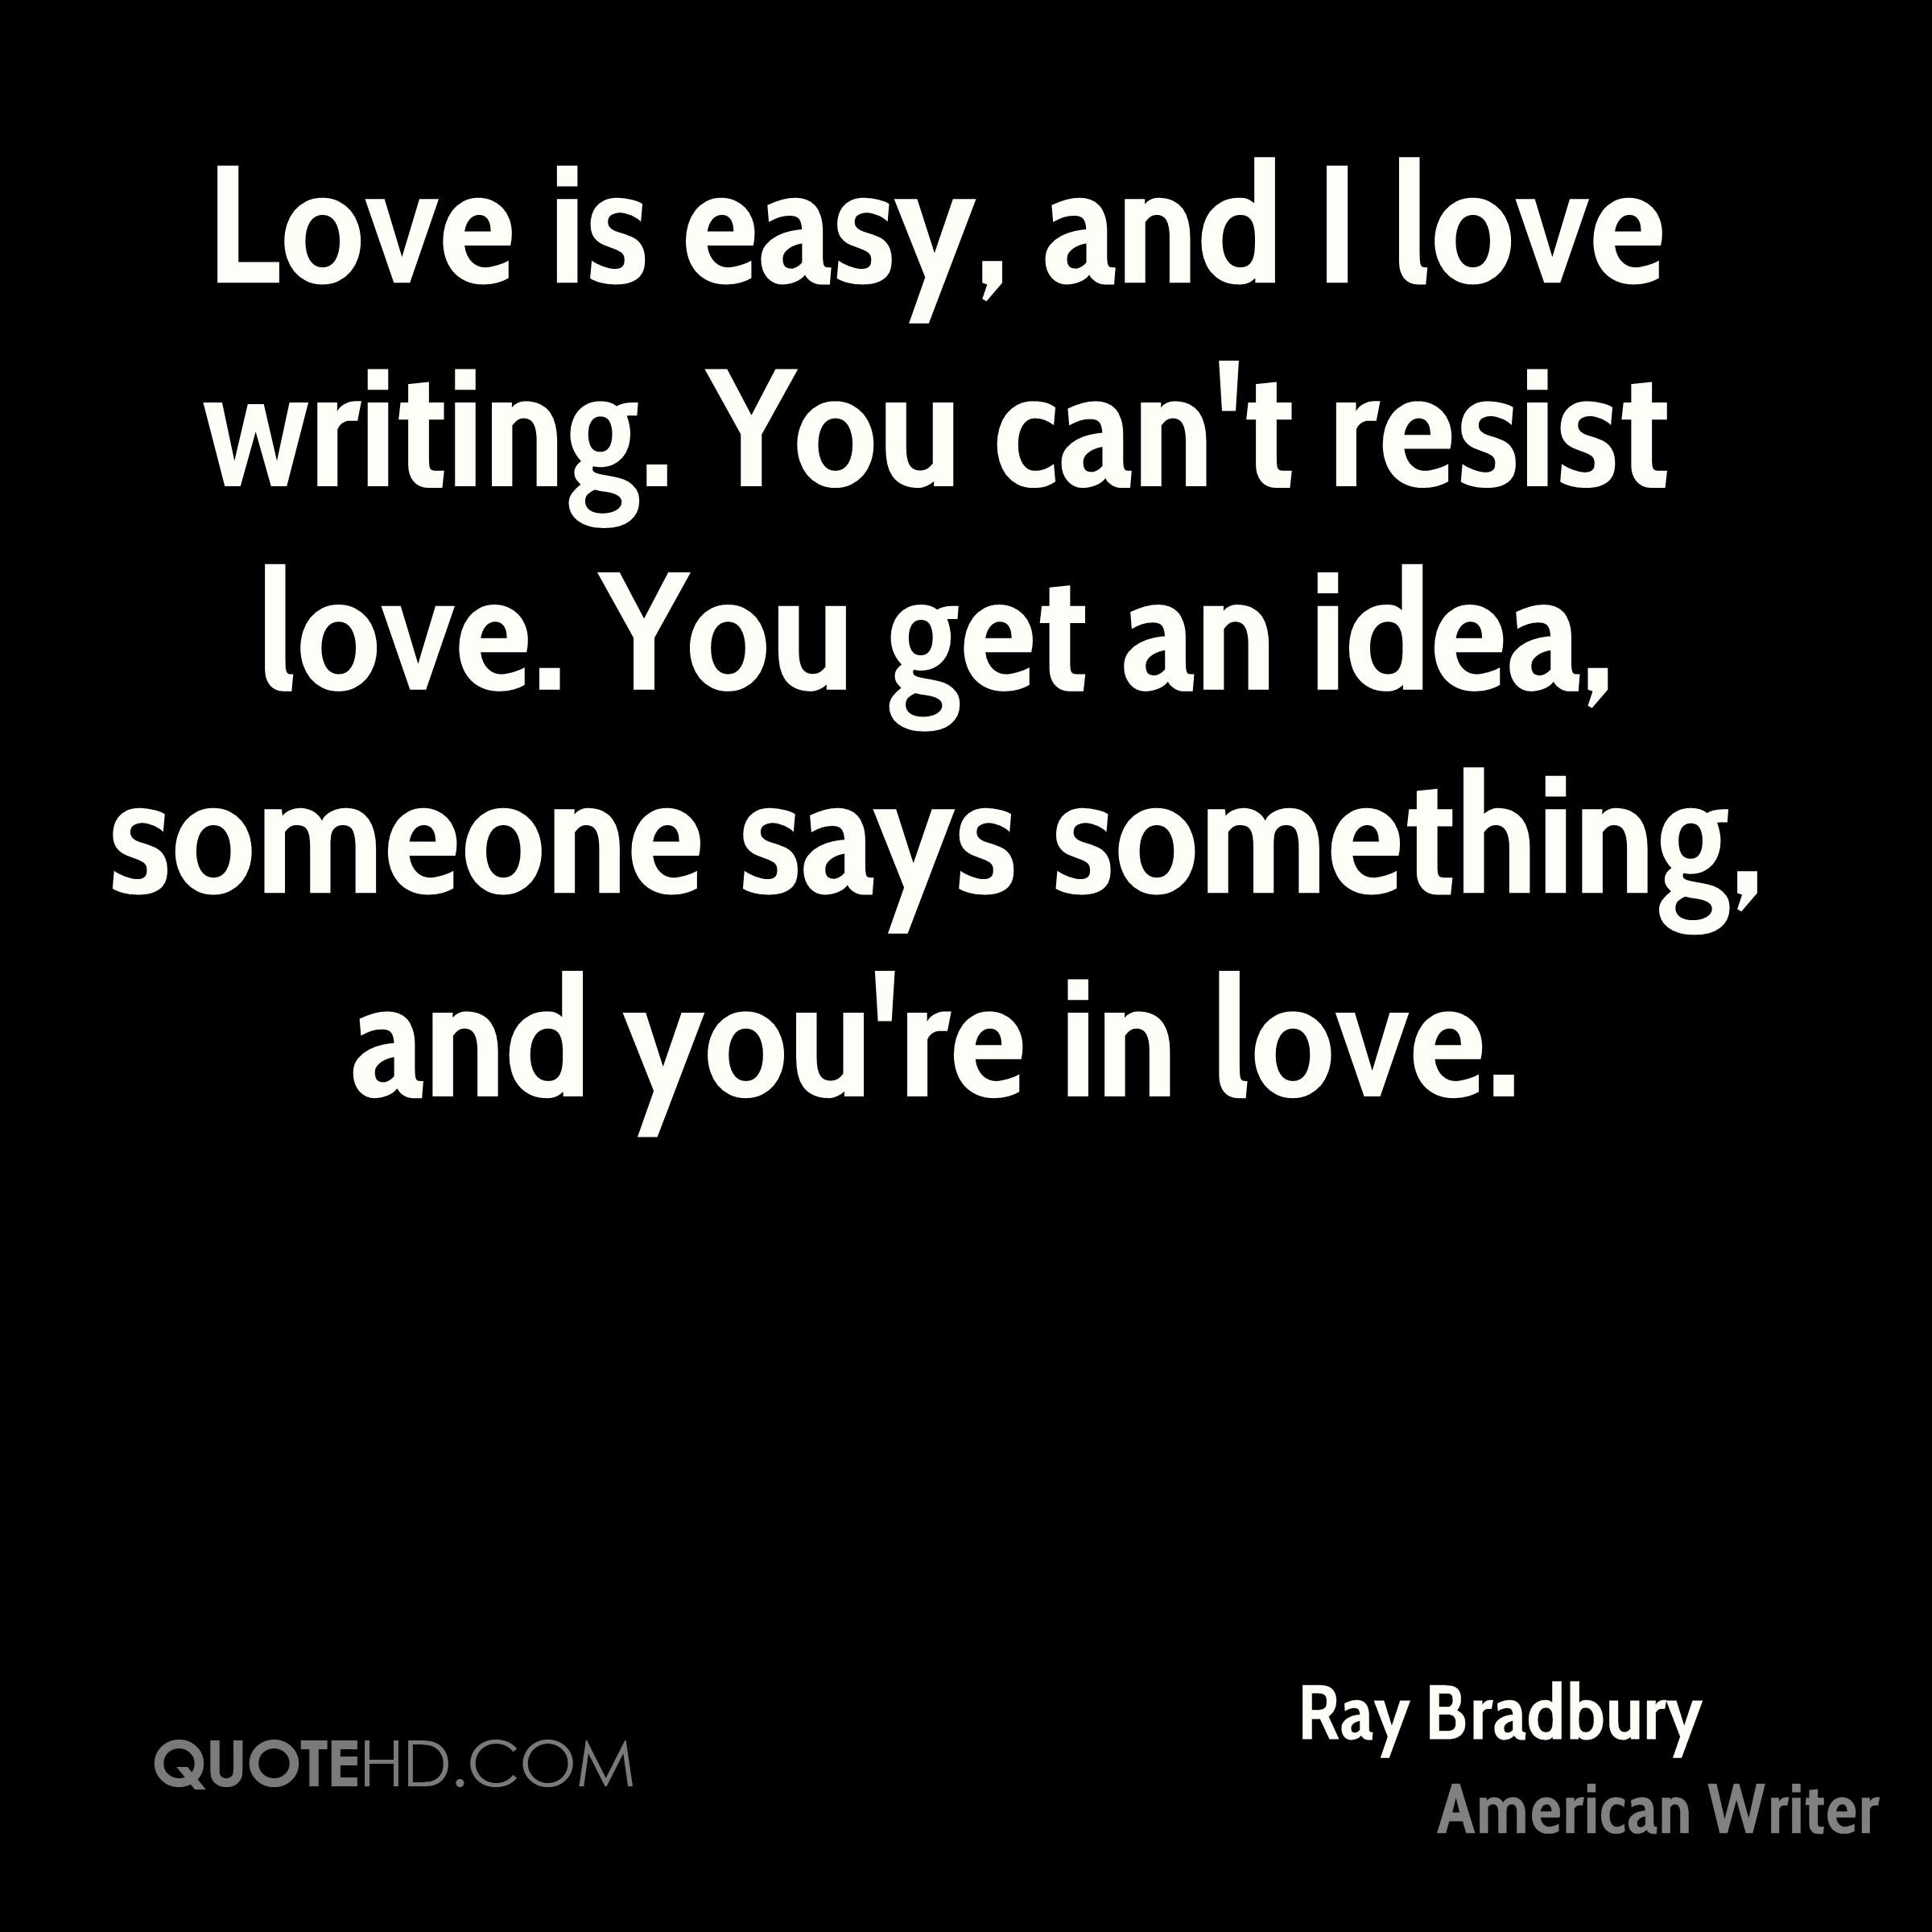 Love is easy, and I love writing. You can't resist love. You get an idea, someone says something, and you're in love.